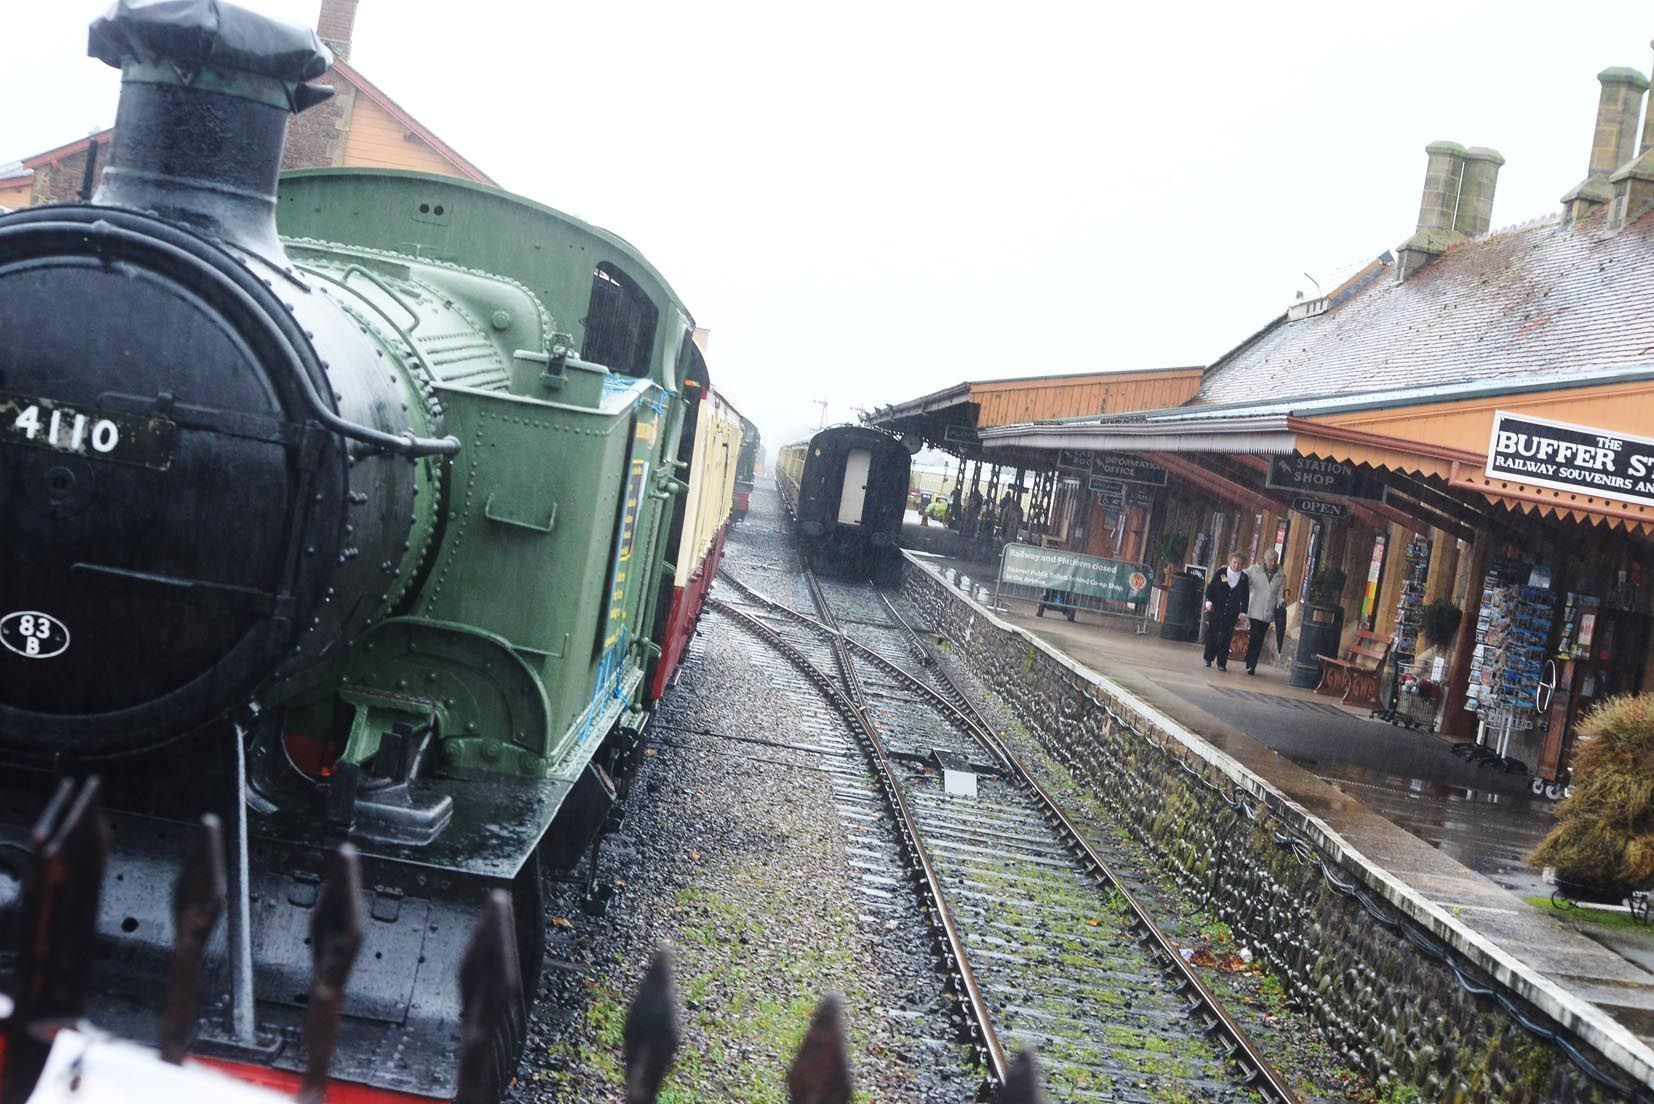 PLANS: For West Somerset Railway